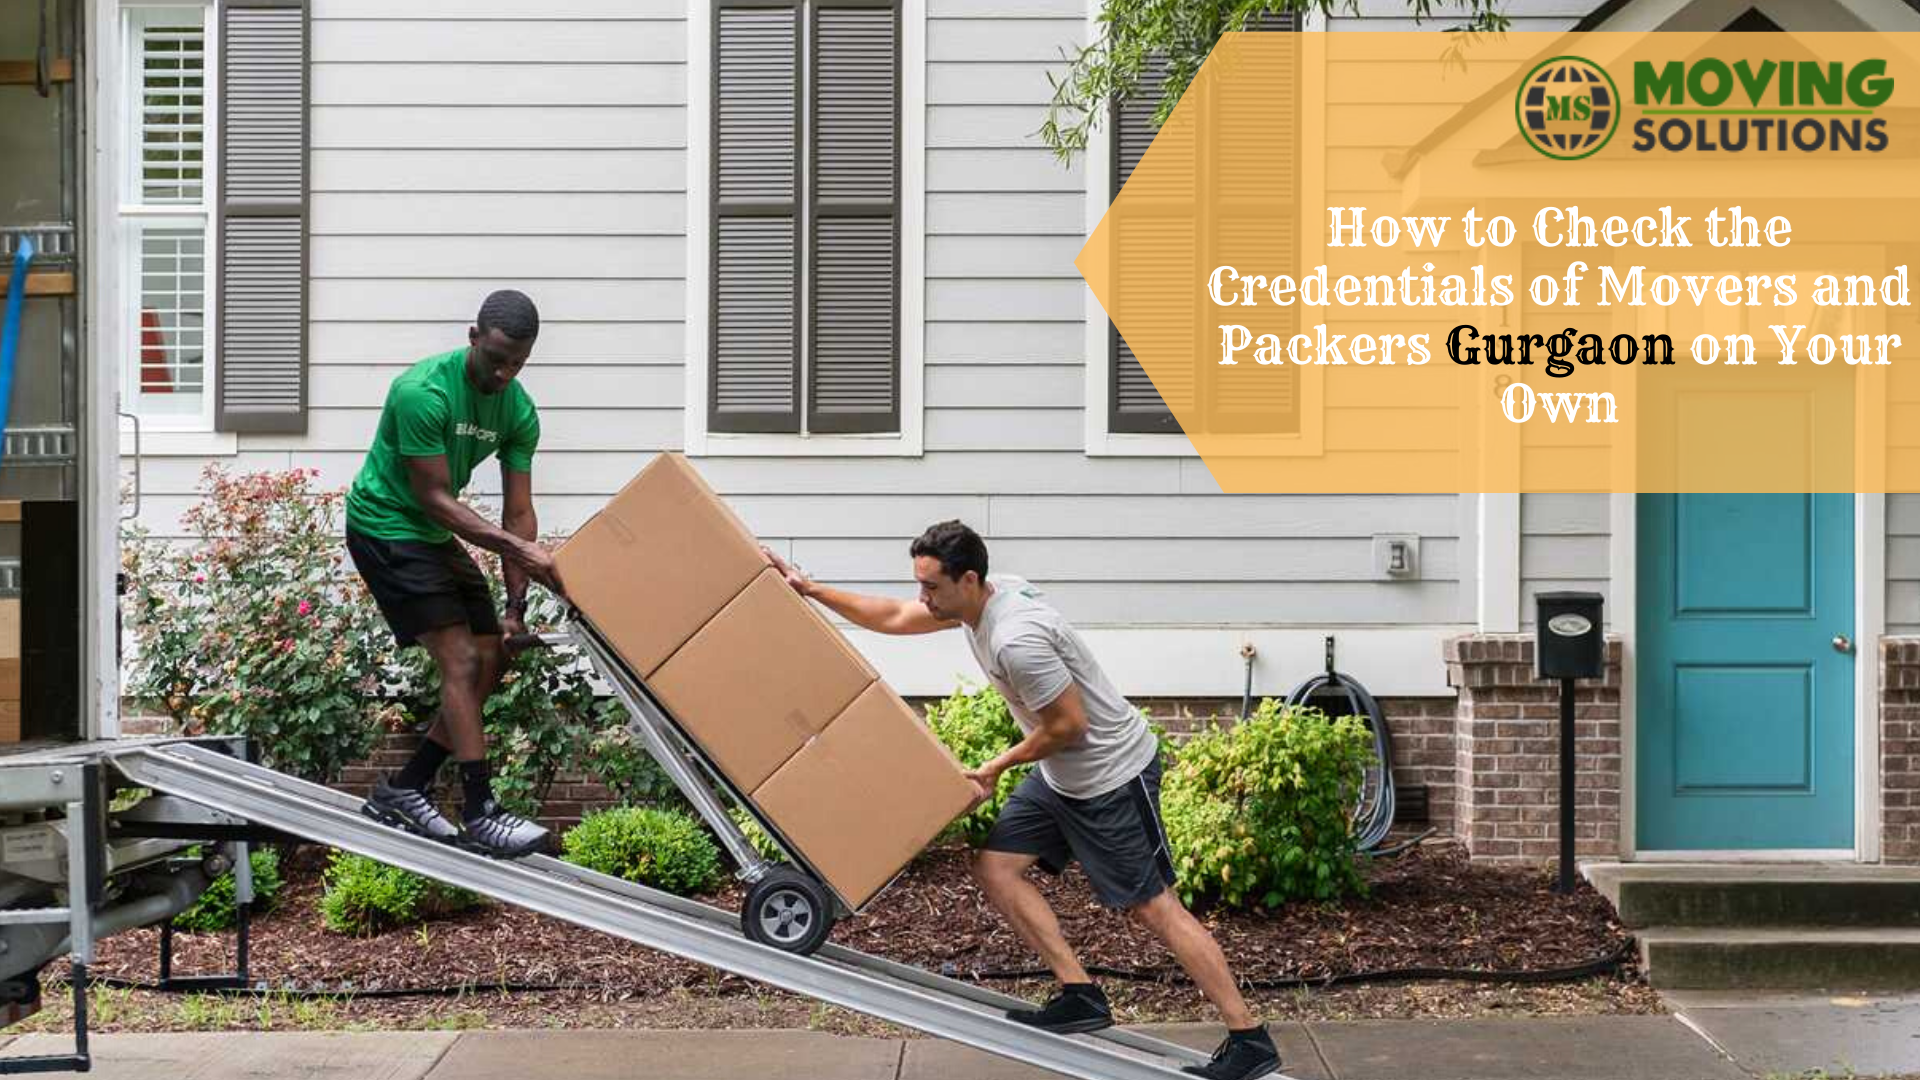 How to Check the Credentials of Movers and Packers Gurgaon on Your Own